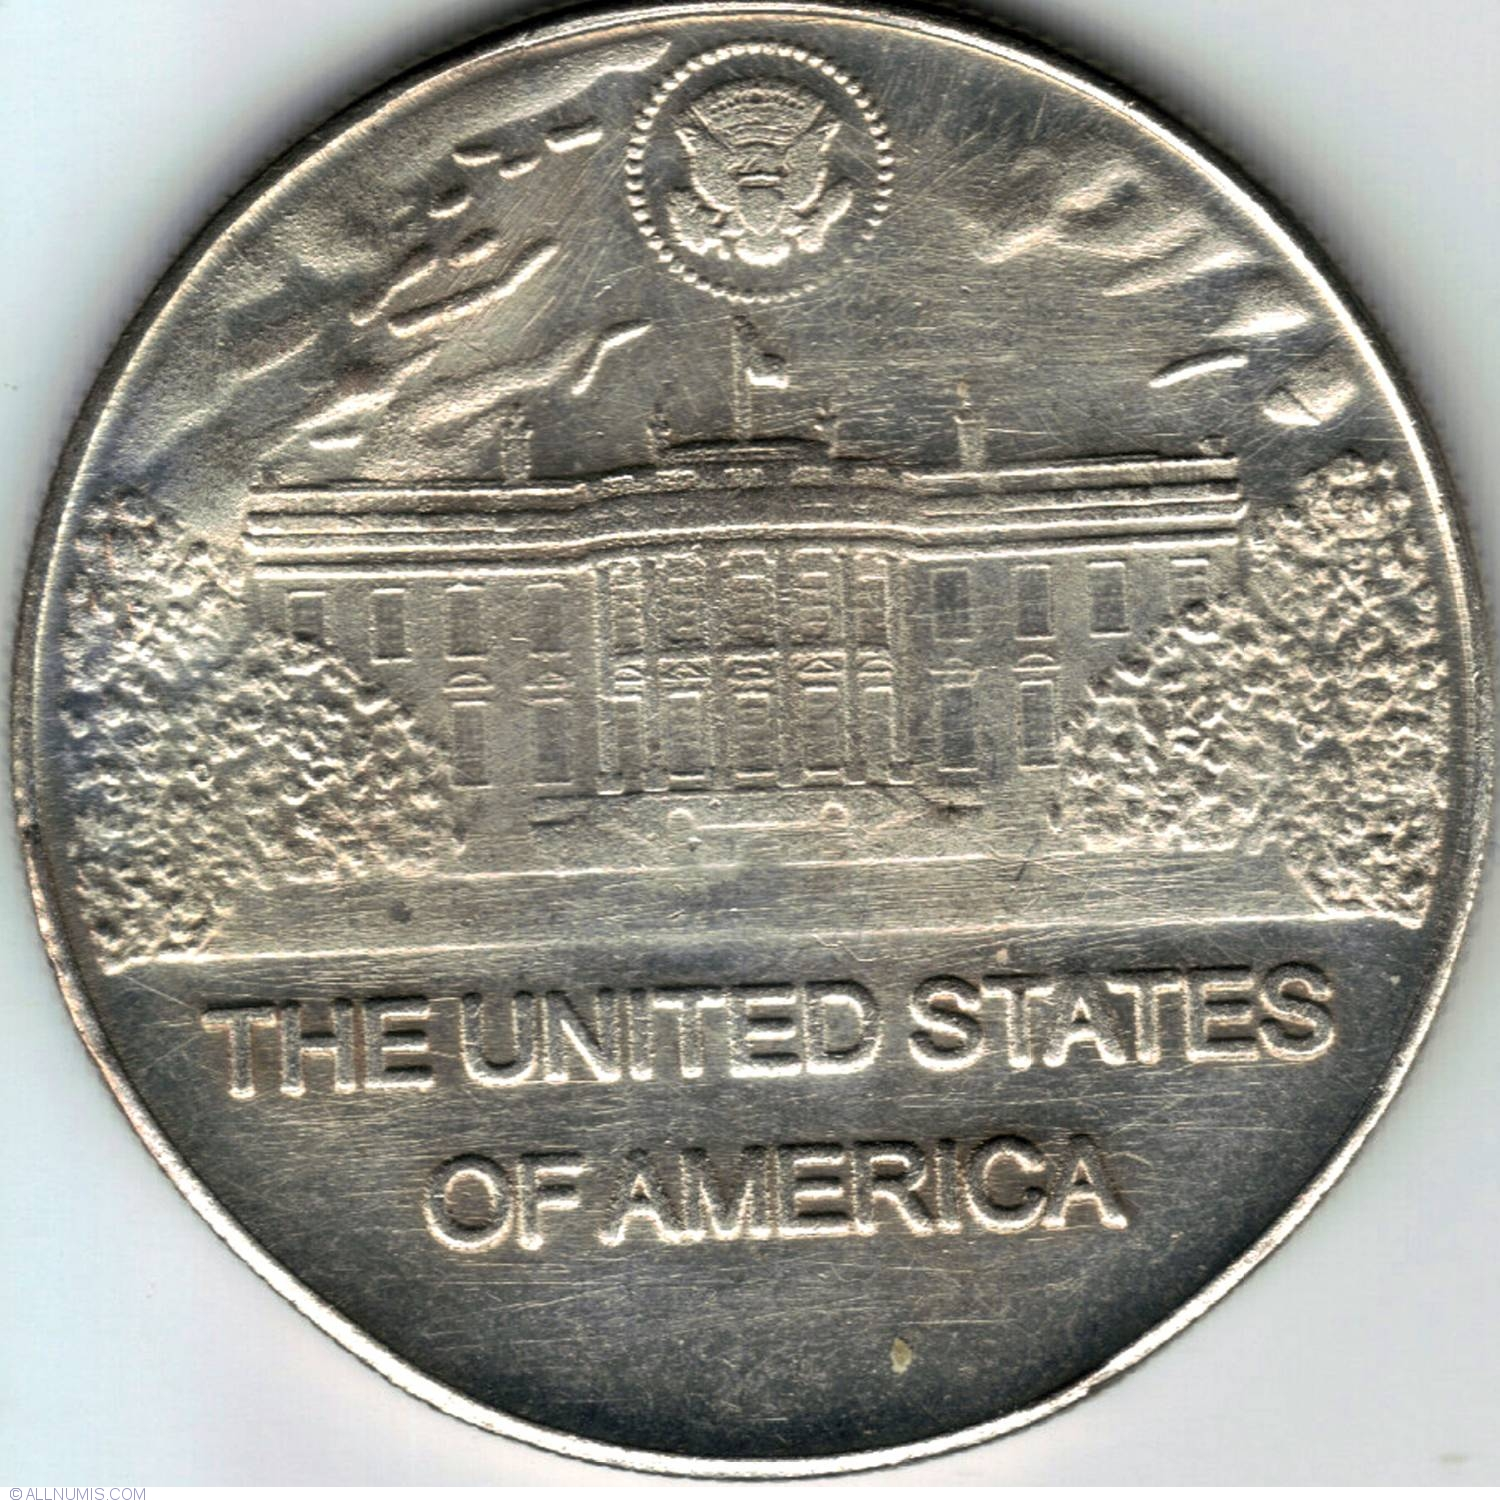 James Madison Jr Fantasy Token United States Of